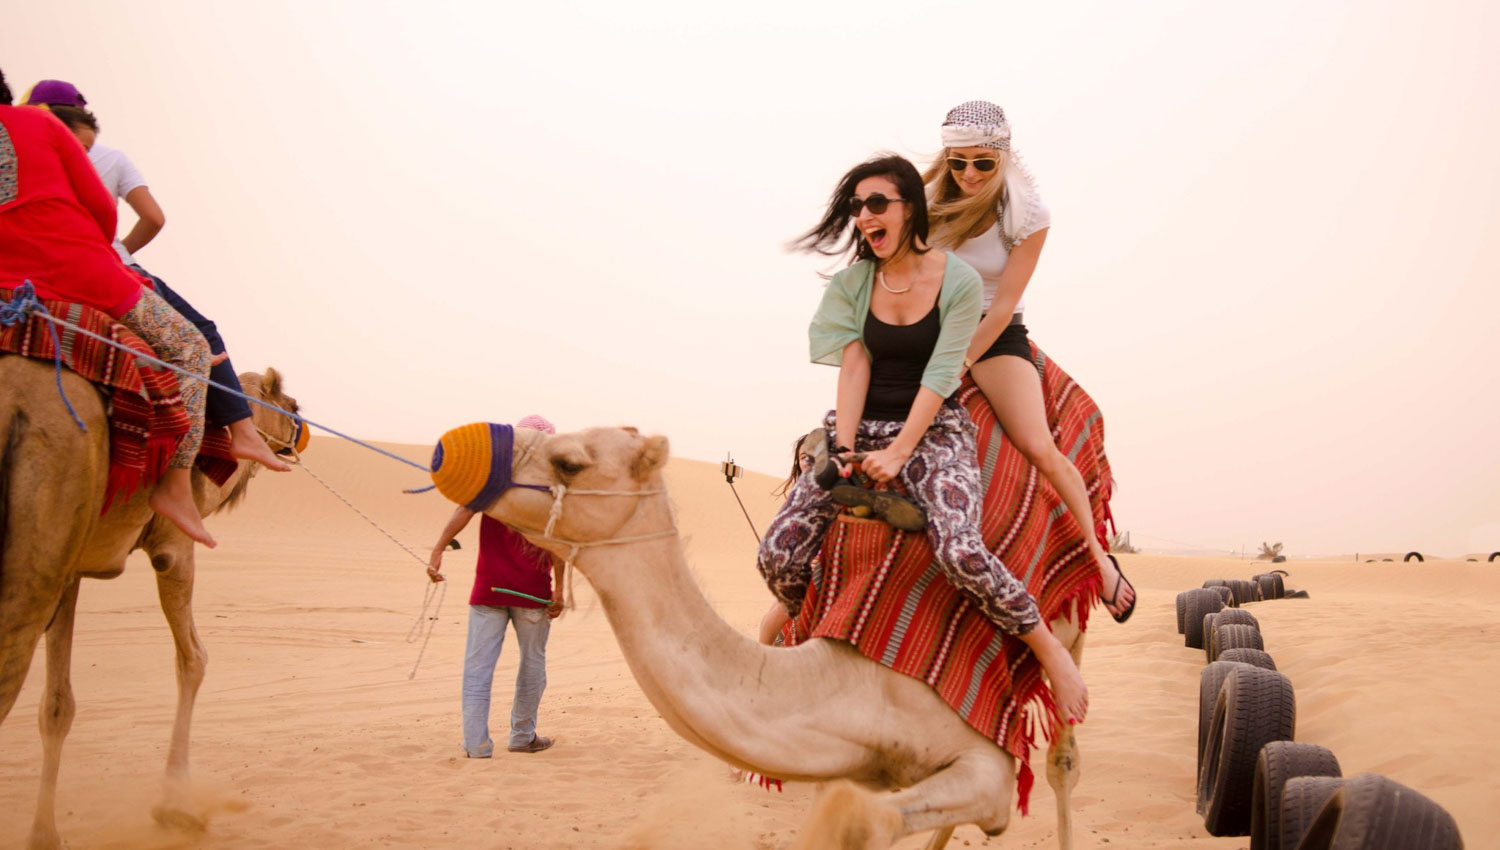 Desert Safari Dubai , How to Choose the Best And cheapest